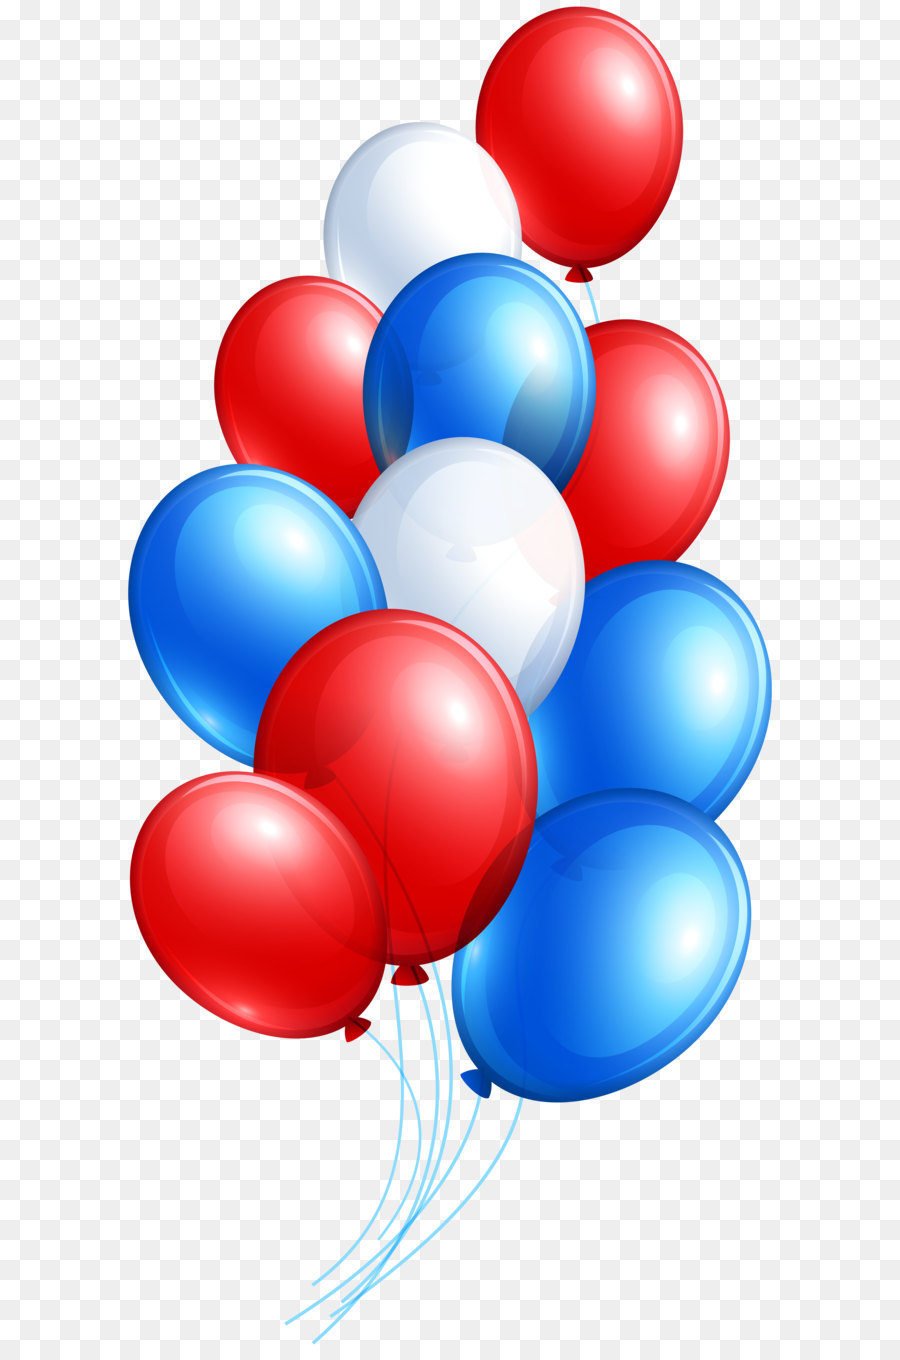 Balloon clipart 4th july.